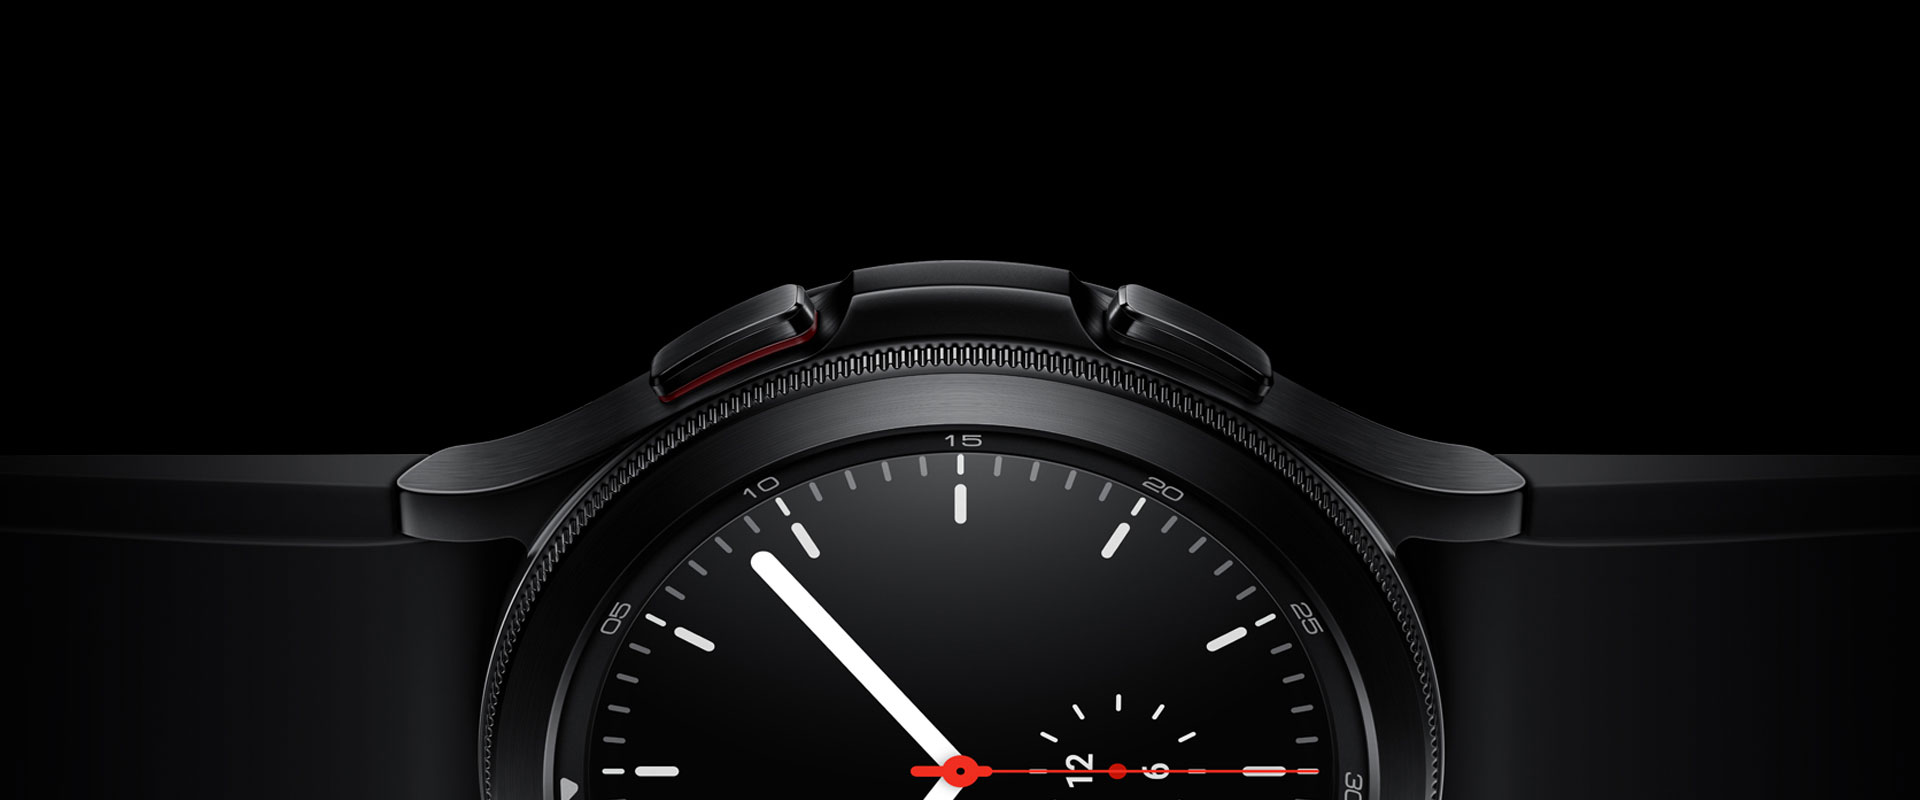 The half side of the watch face of a black Galaxy Watch4 Classic is prominently displayed, focusing on its bezel, materials, and simple watch face screen that is showing the time.